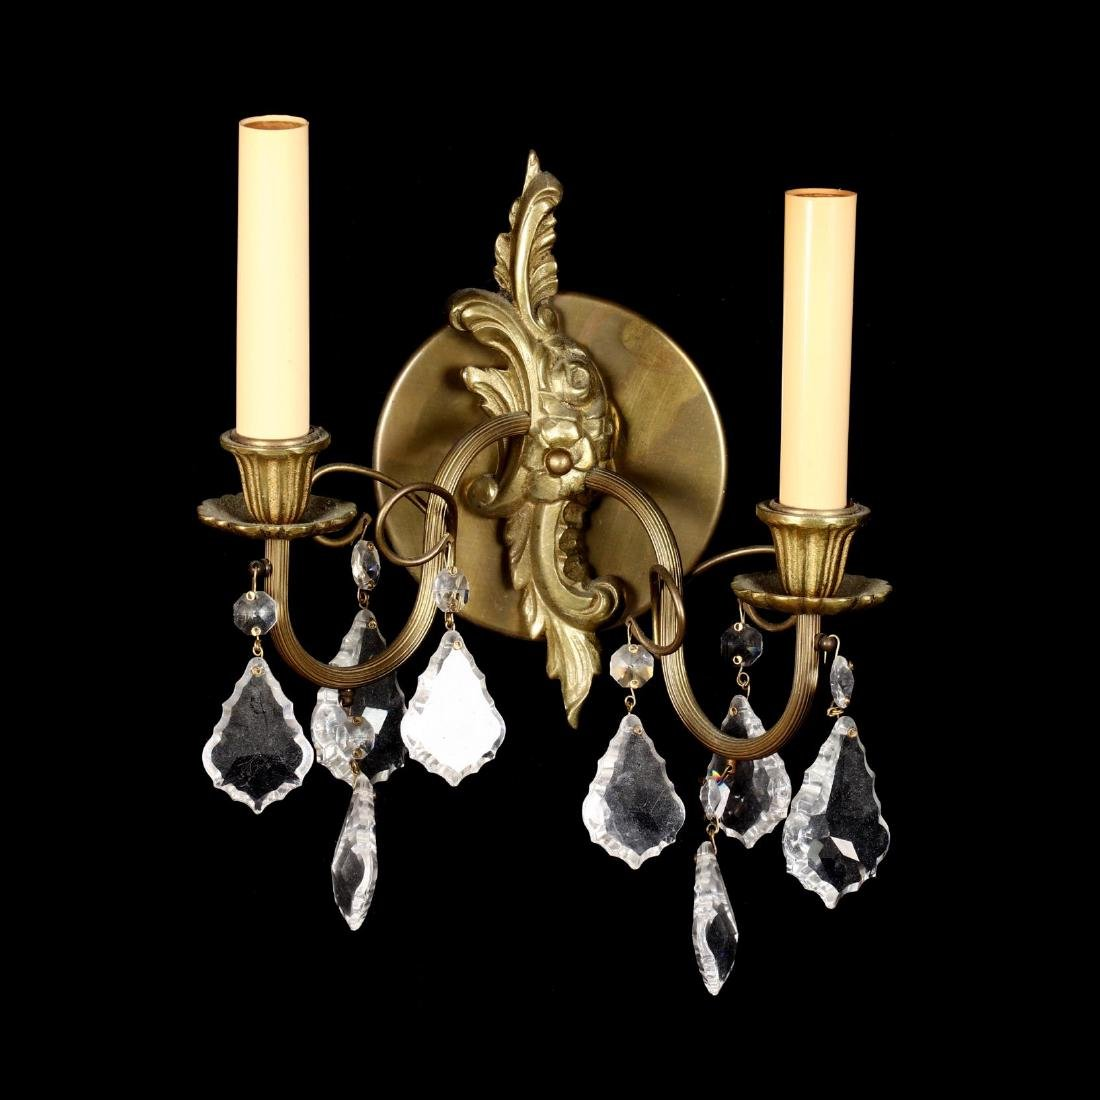 Pair of French Rococo Style Drop Prism Wall Sconces - 6